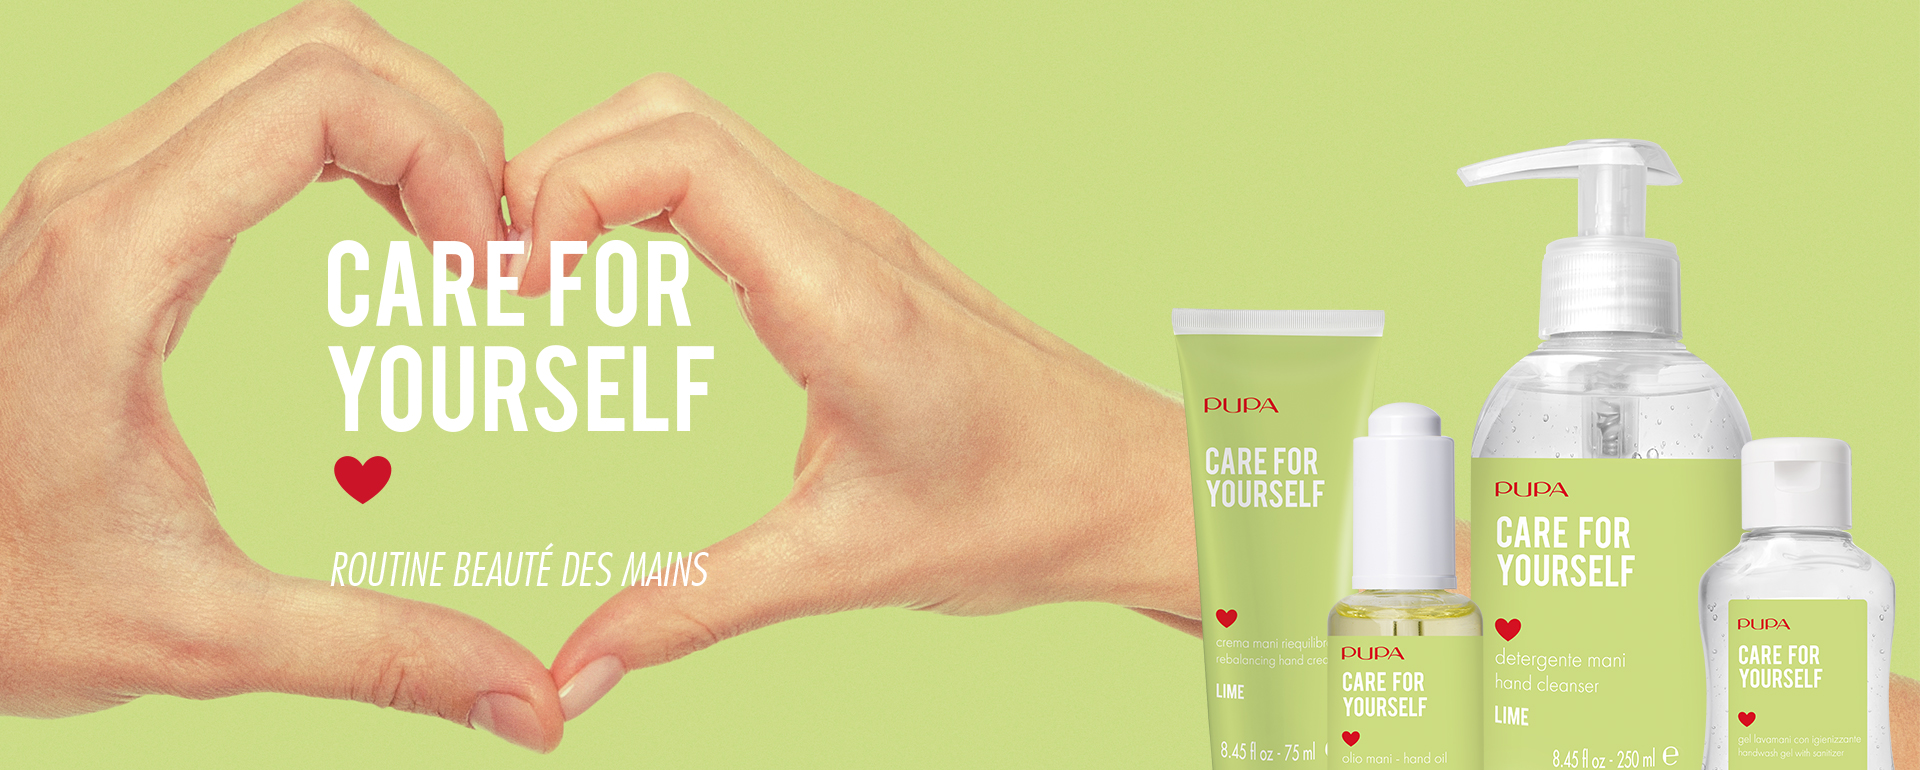 Care for yourself - PUPA Milano